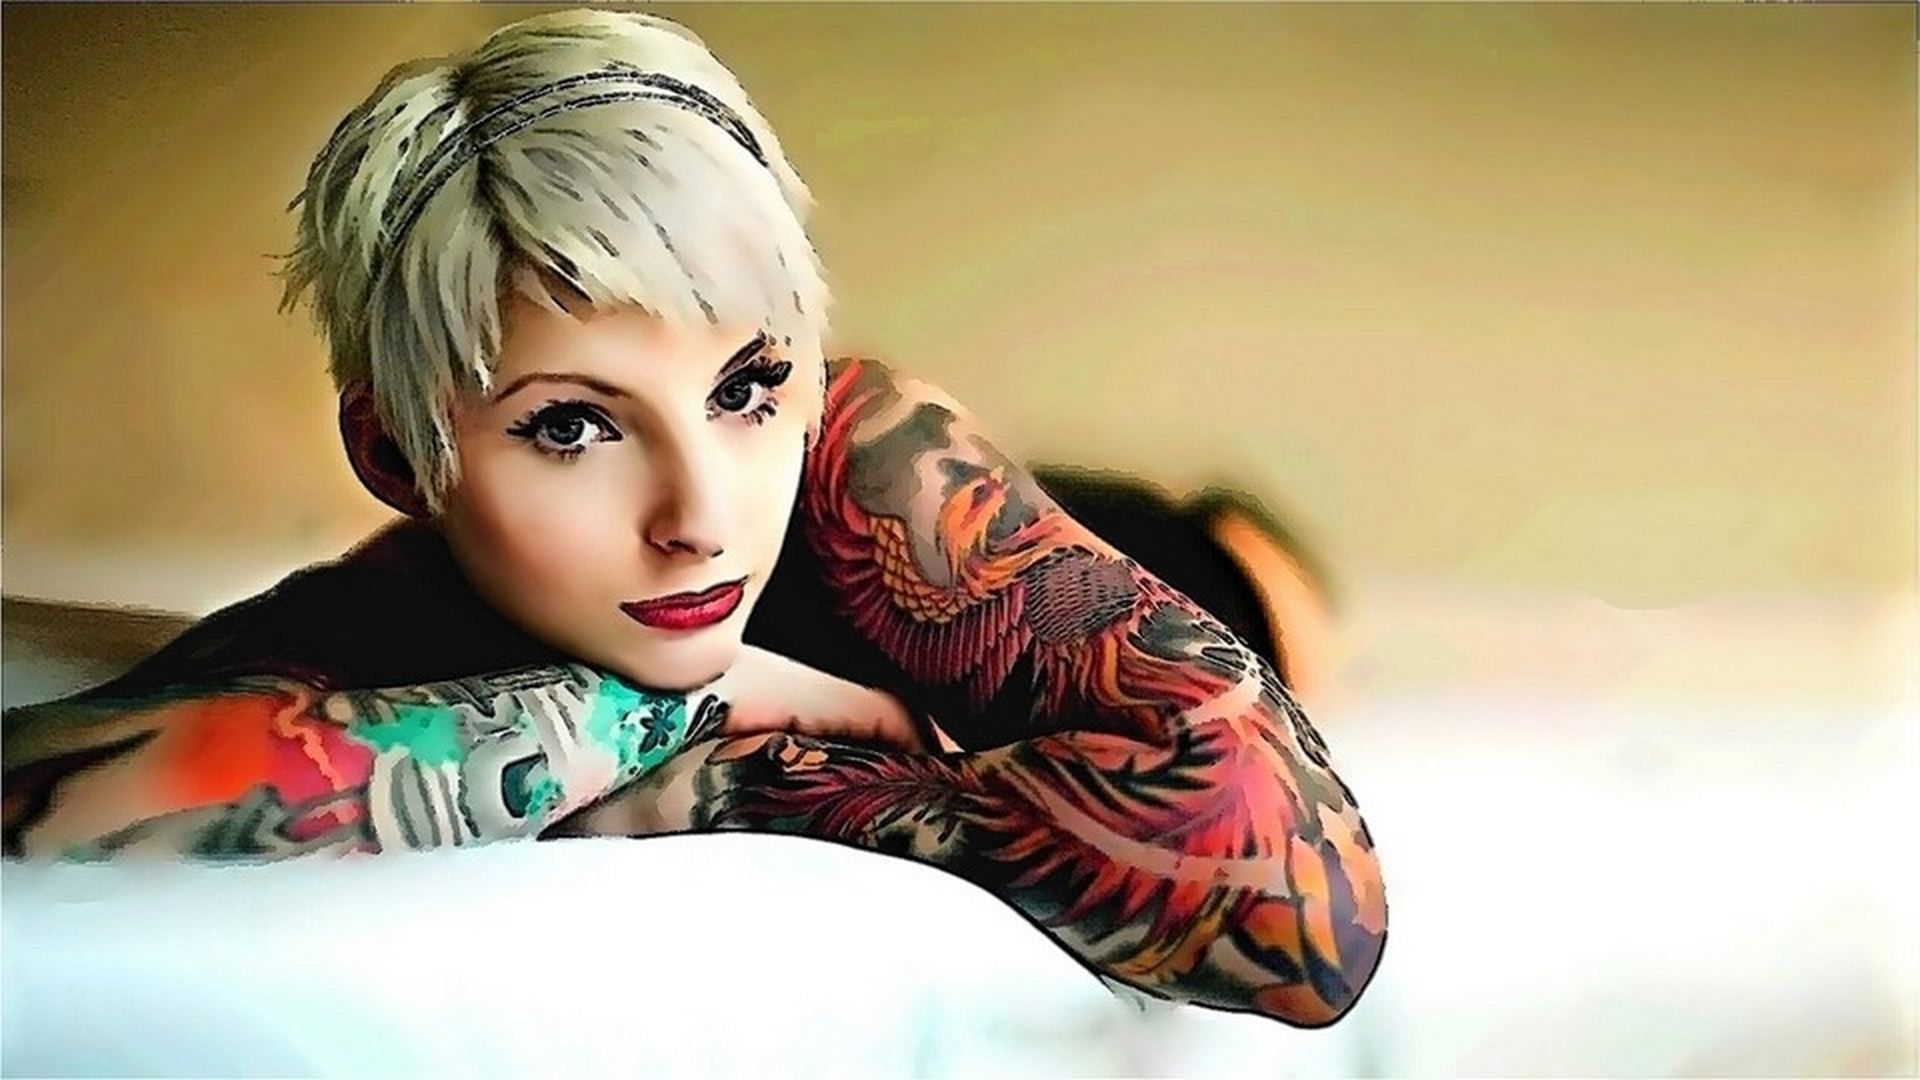 image for tattoo full body girl hd wallpaper 1080p | denenecek